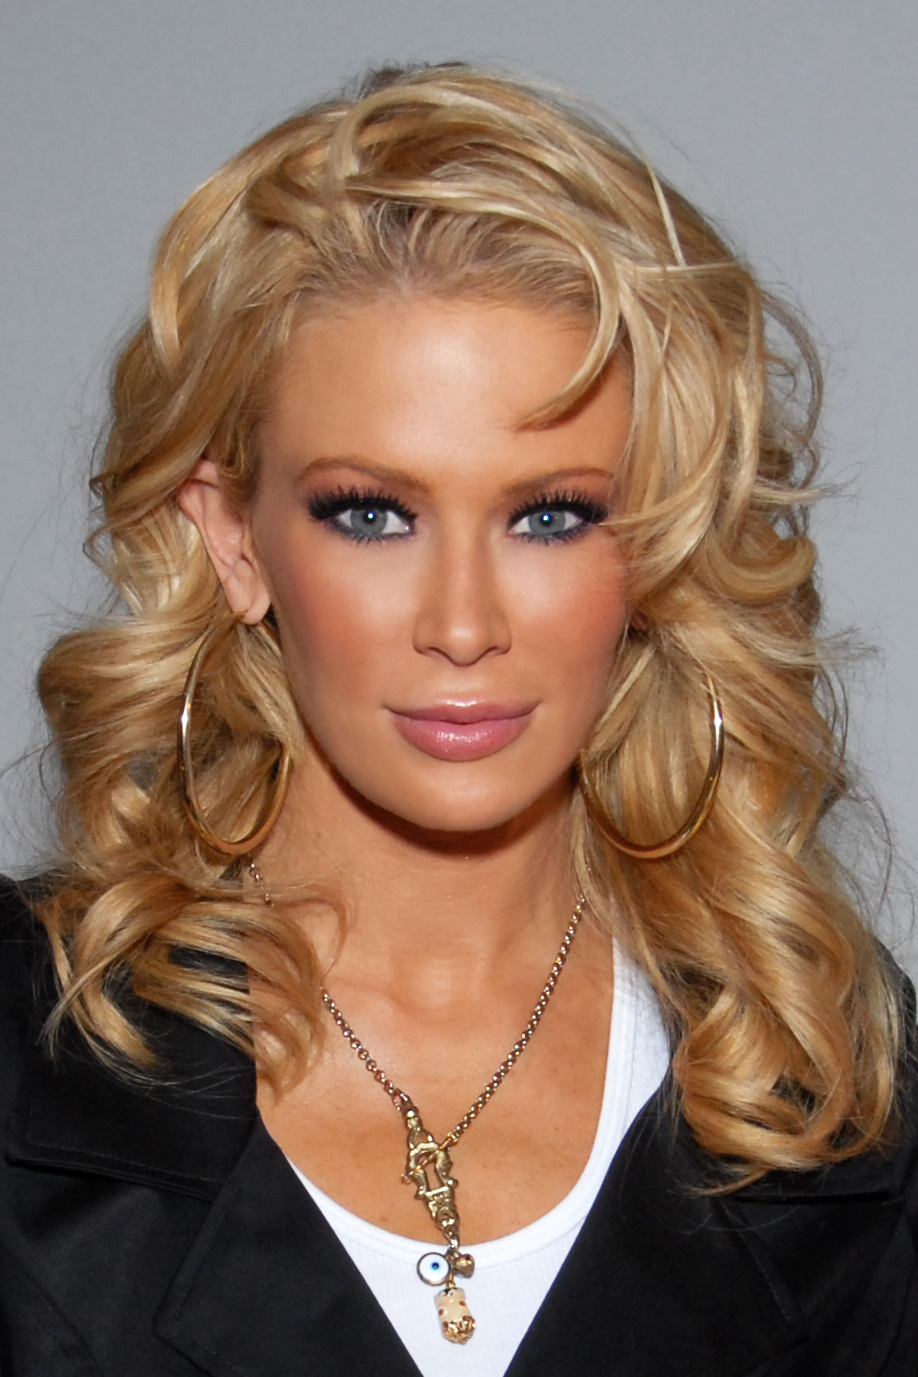 Really popular:  Jenna Jameson in 2008. Photograph by Glenn Francis of PacificProDigital.com.